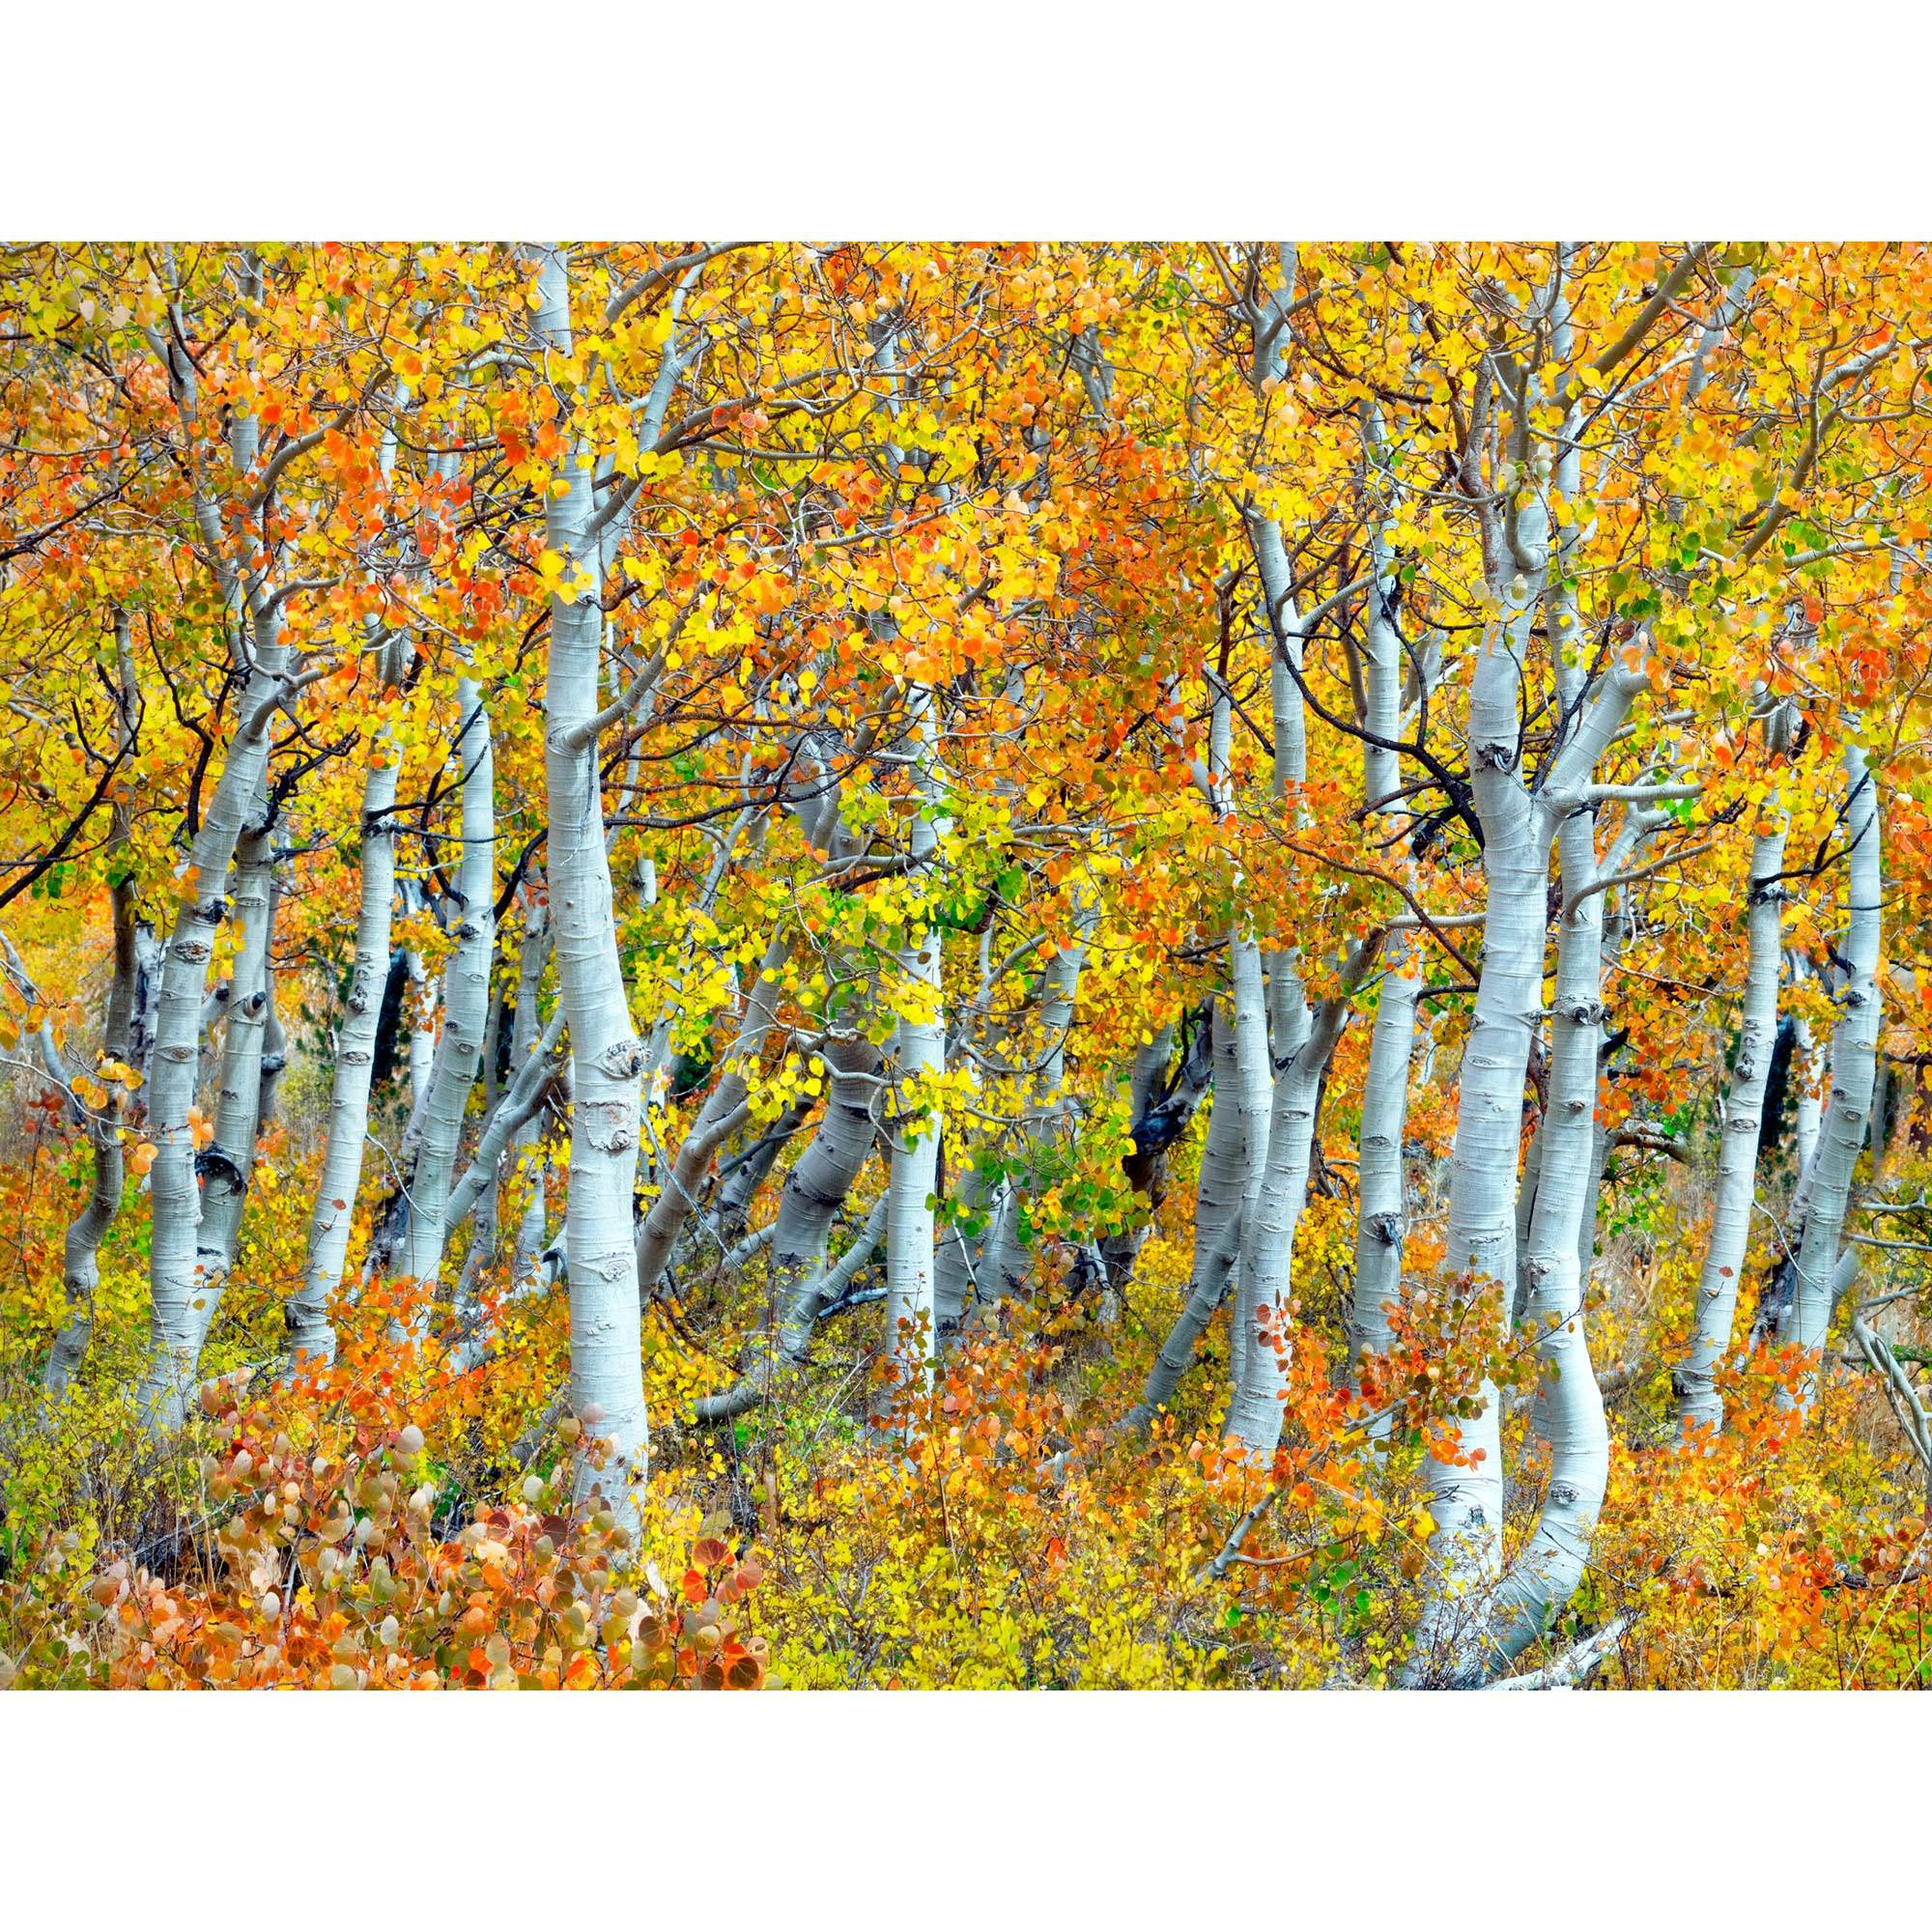 Trunks of aspen trees outdoor wall art piece by West of the Wind ...